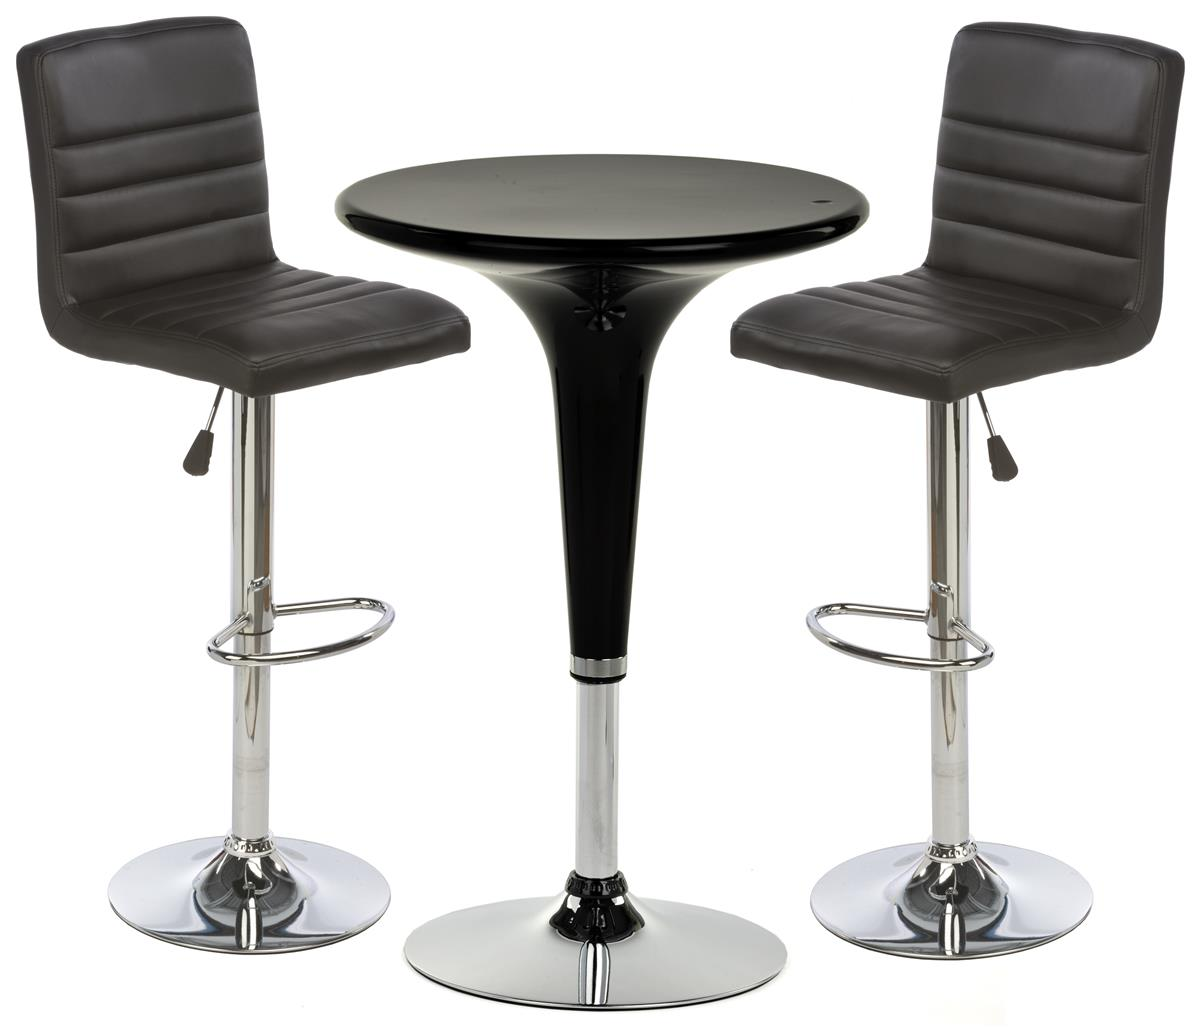 Round Table With Stools: Bar Stool And Table Sets